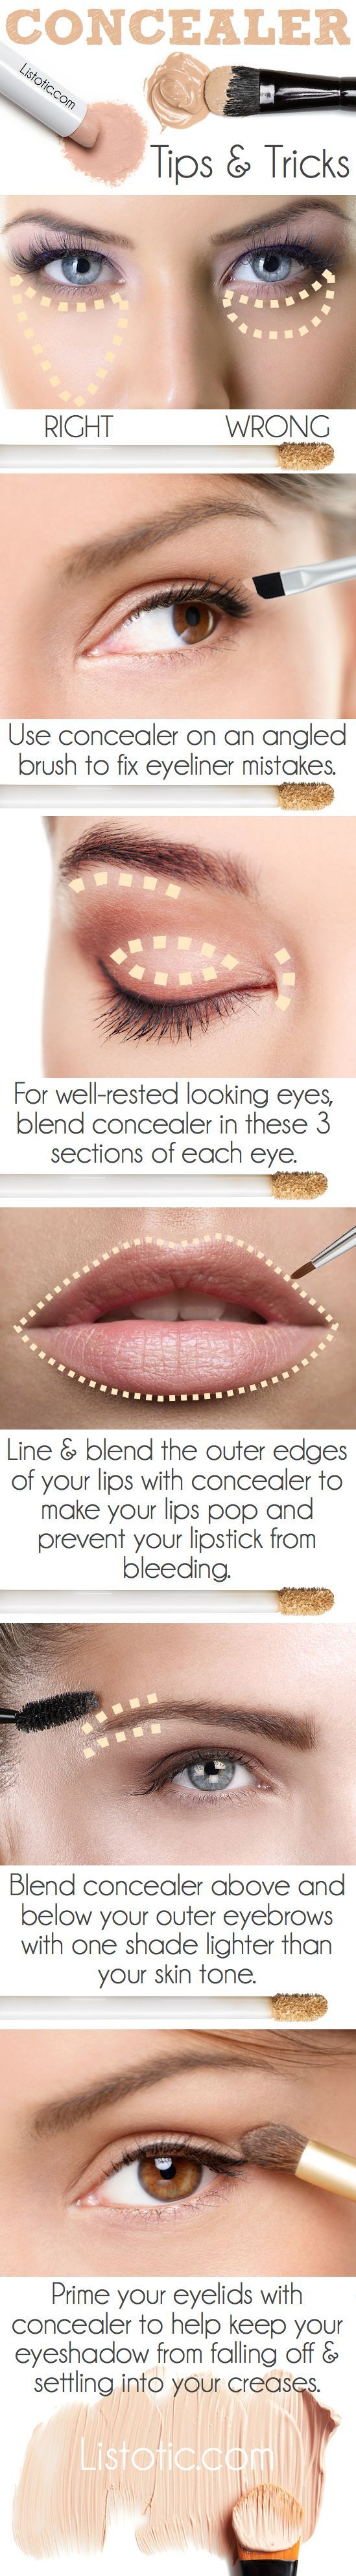 #1. Not knowing how to use your concealer | 20 Beauty Mistakes You Didn't Know You Were Making #eyecare